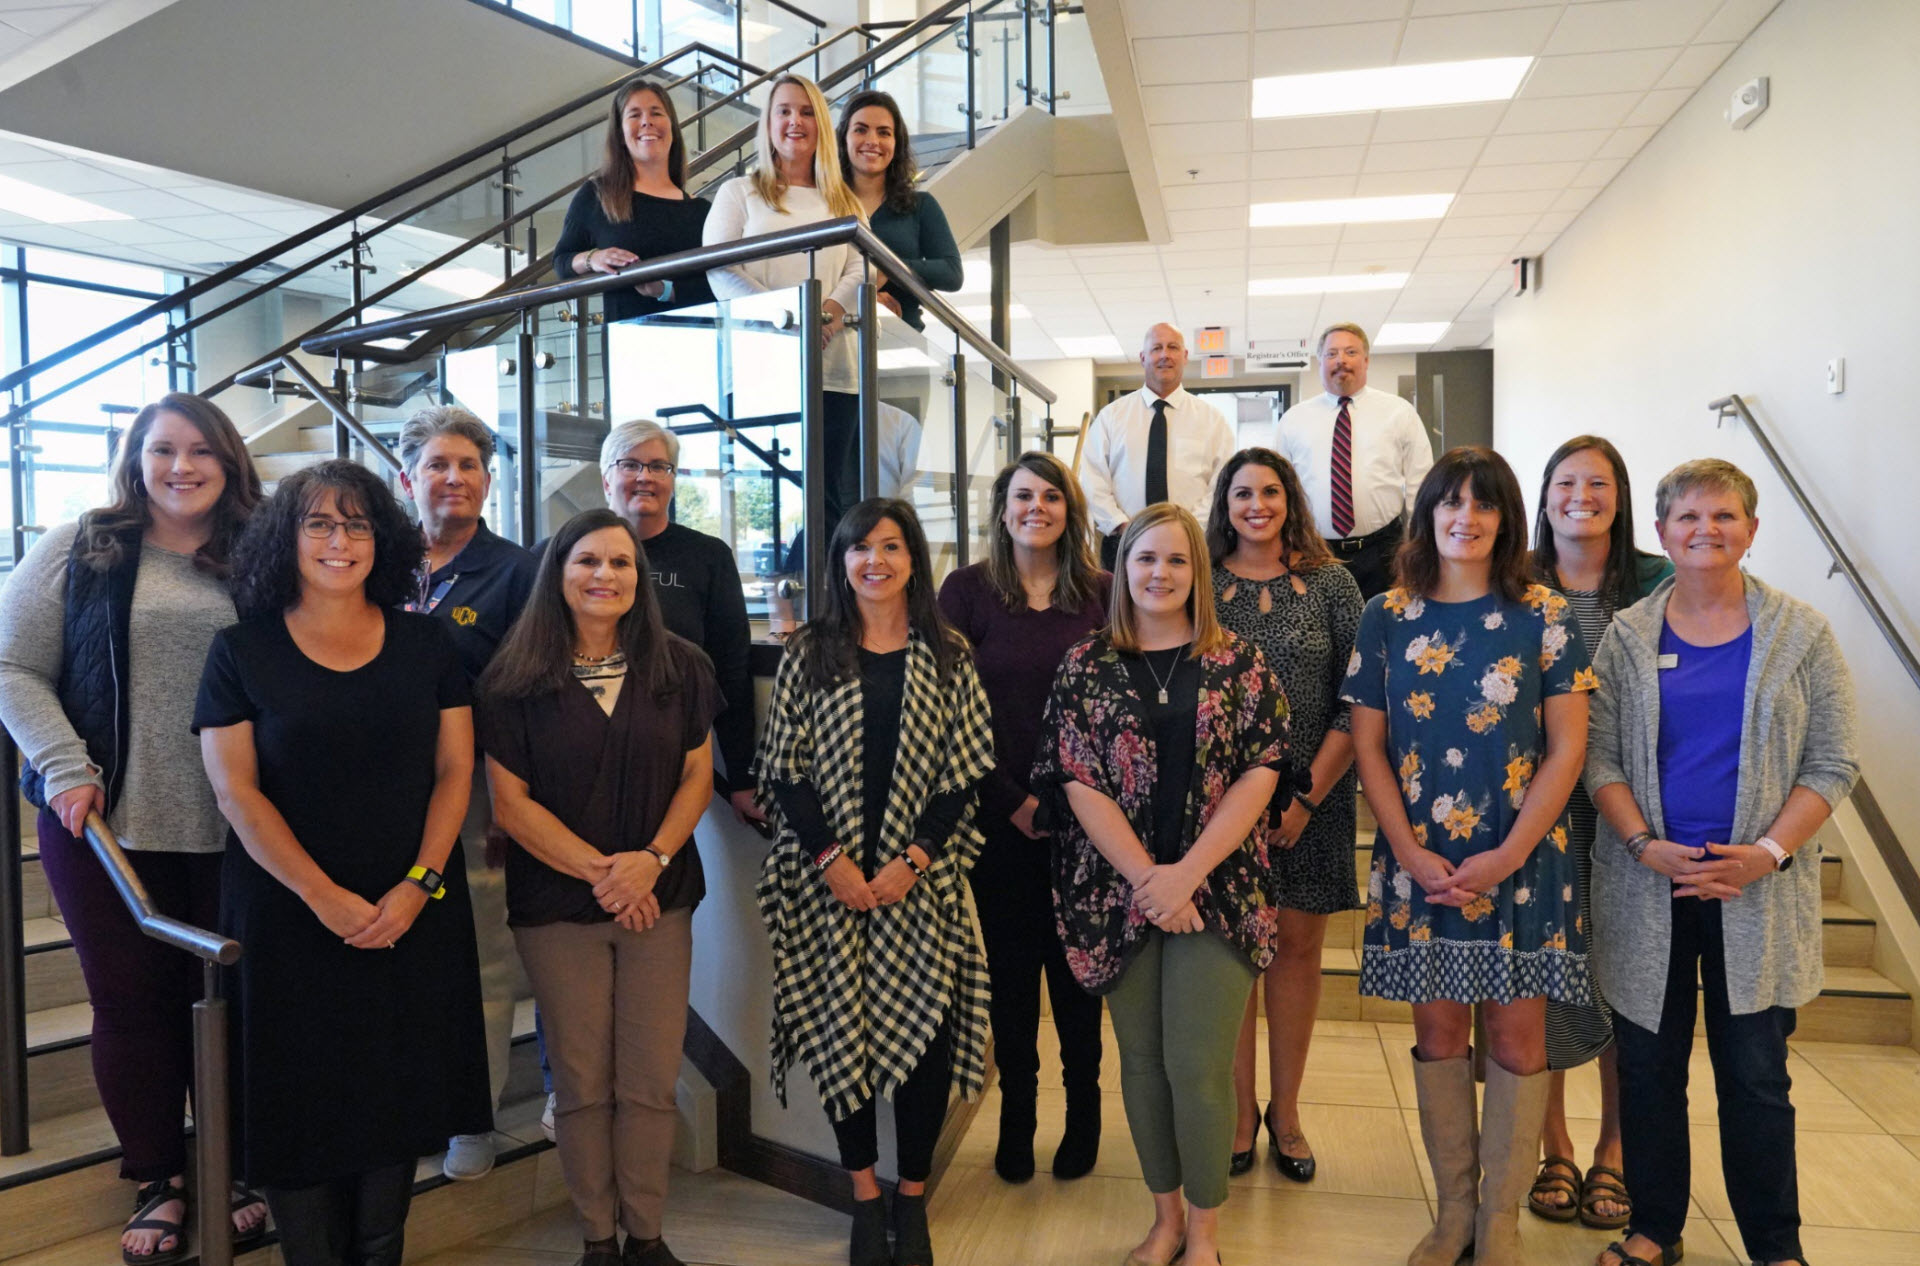 The 2019-2020 Site Teachers of the Year are: (pictured left to right) first row, Rebecca King, Kim Strom, Alisa Lee, Megan Nigam, Jeri Potter, Merry Lahti; second row; Kelsey Fallis, Deb Beattie, Angela Eakes, Mary Murray, Betty Collins, Lacey Dake; back rows, Heide Donalson, Tara Miller, Brittany Hamilton, Mike Fields, and Glenn Howard. Not pictured are Victoria Olsen, Melissa Speaker, and Lynnelle Winter.